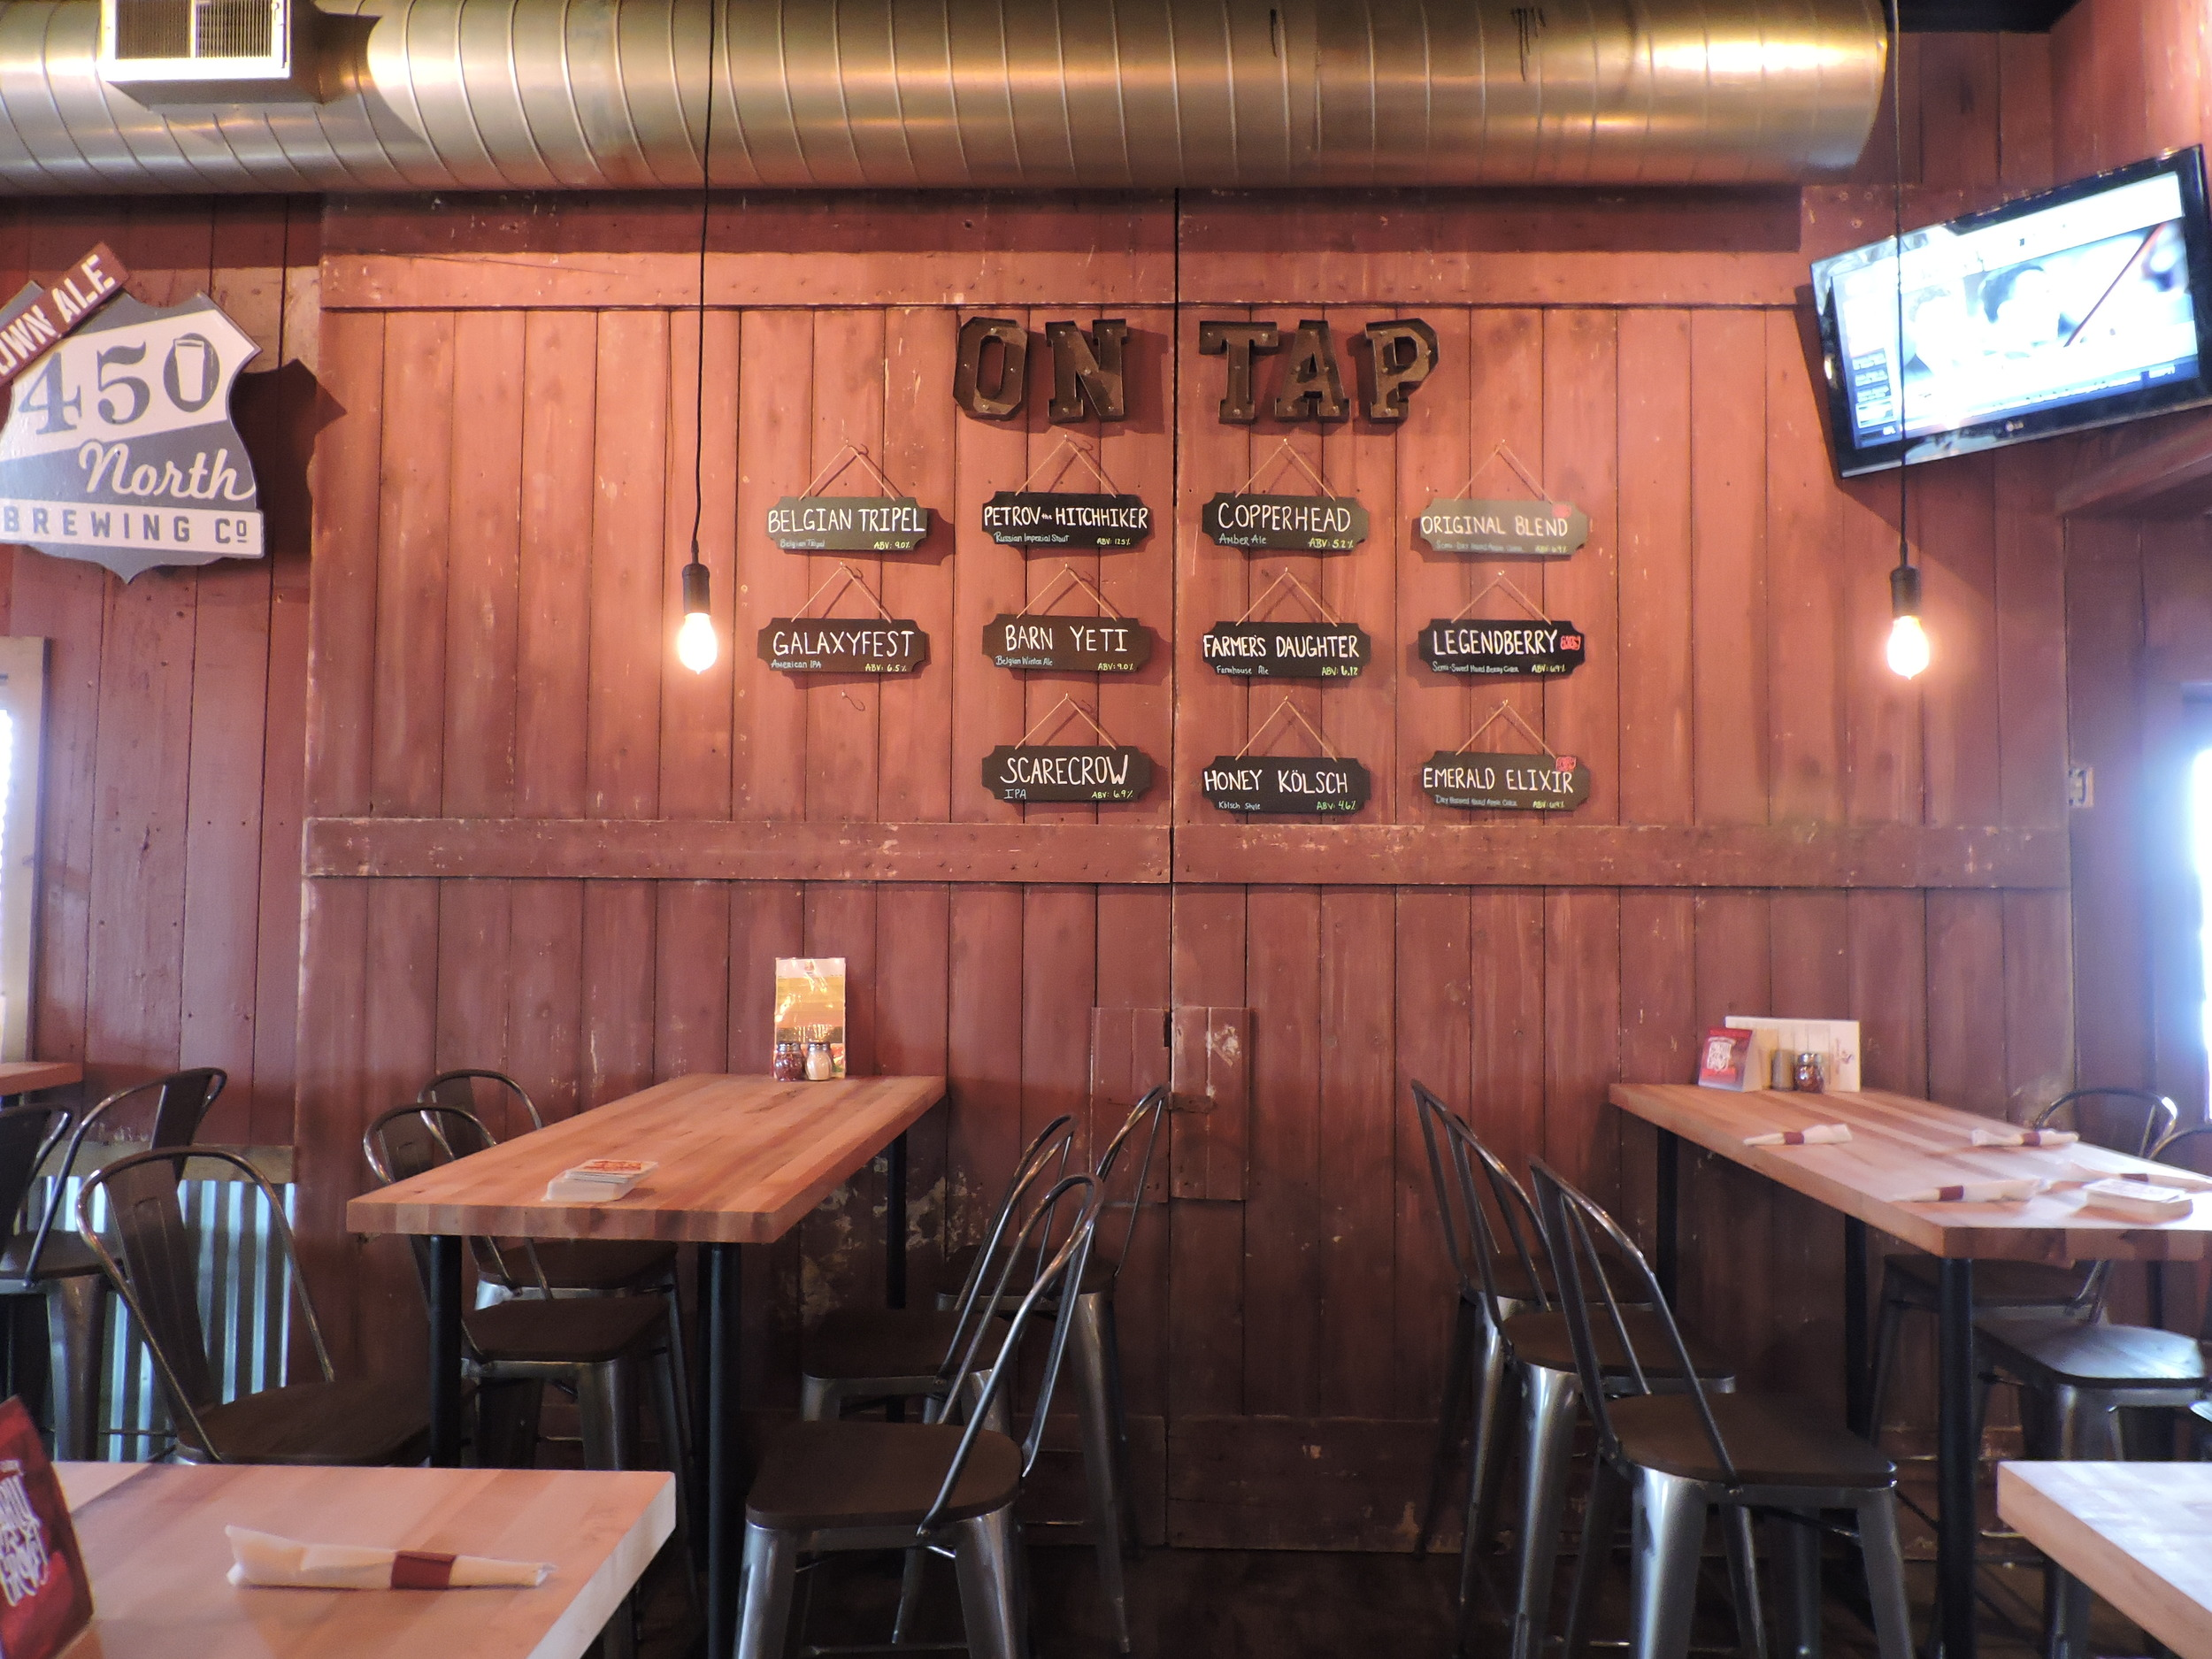 Reclaimed Barn Doors now a wall covering at Simmon's Winery/ 450 N Brewing Company, 8111 E 450 N, Columbus, IN 47203